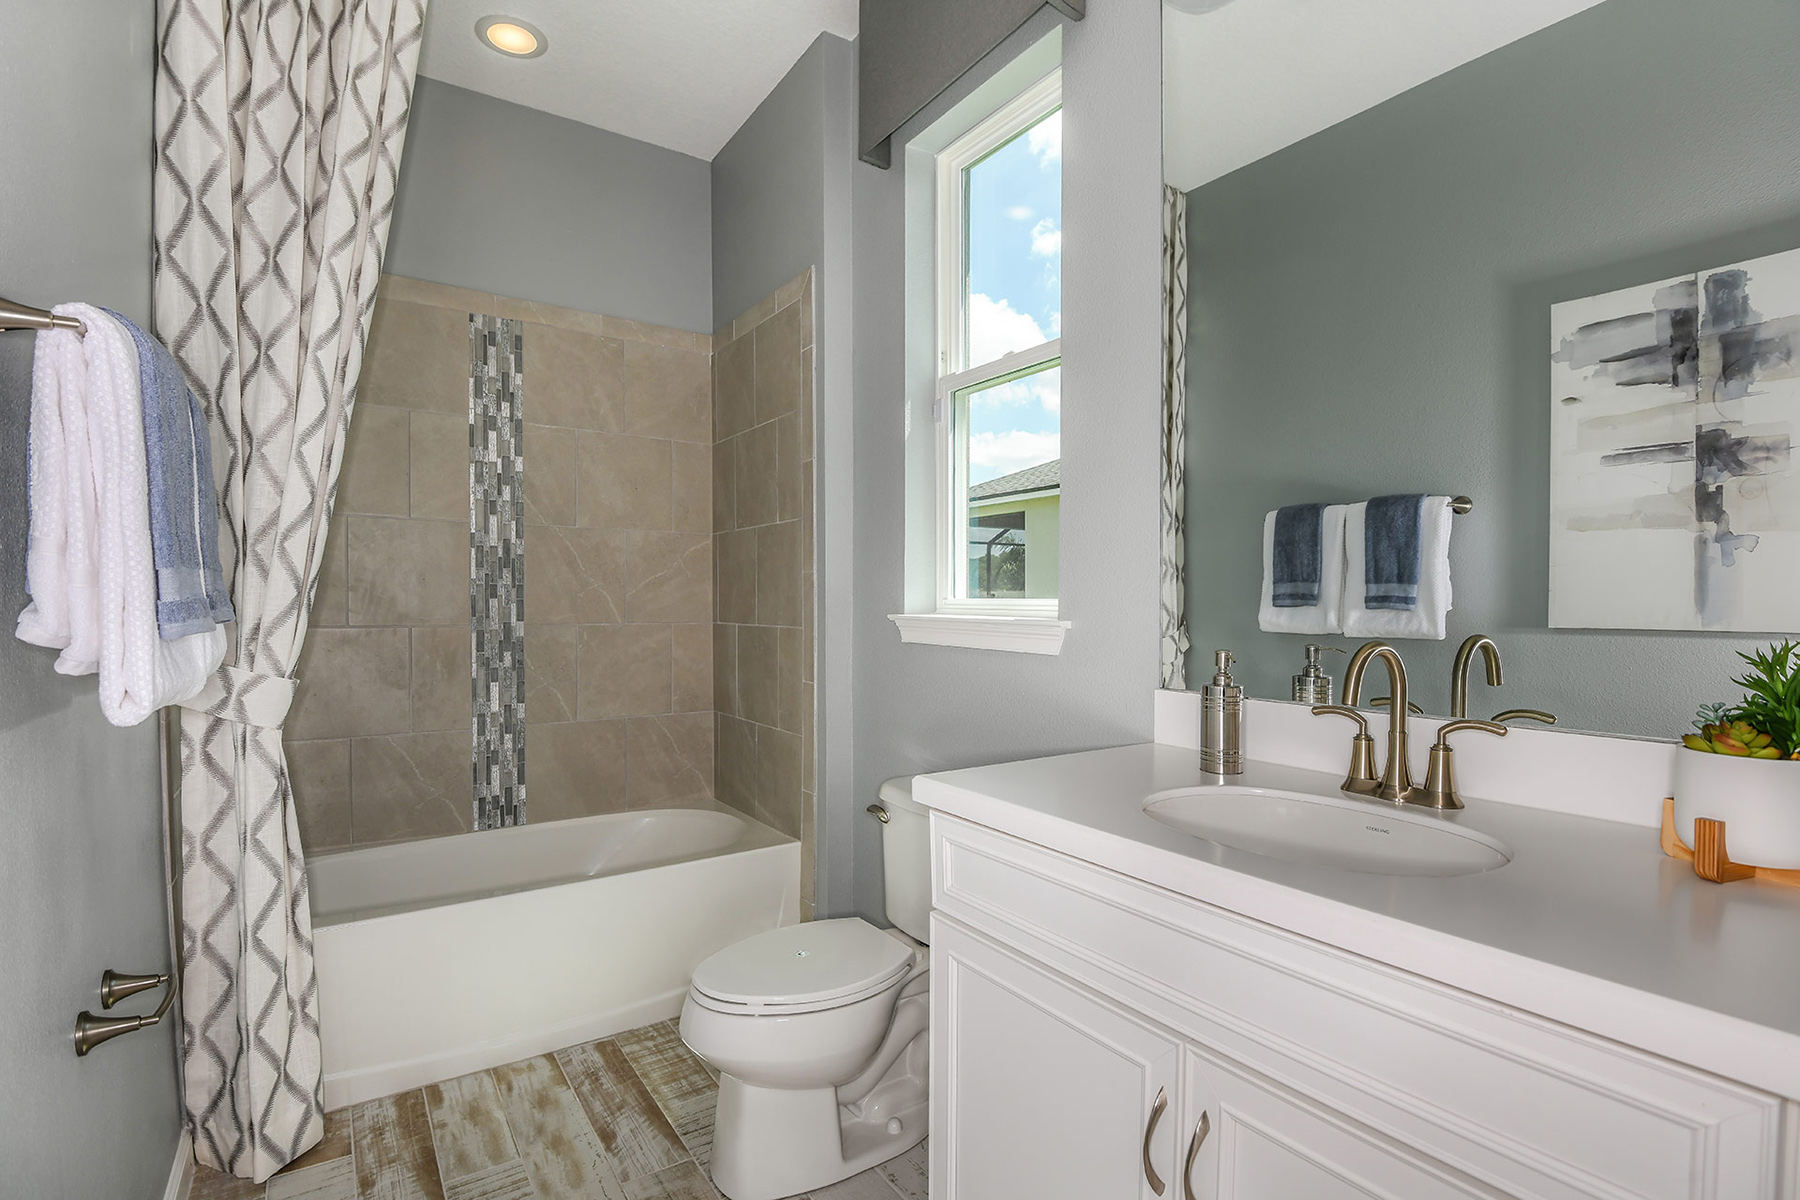 Coquina Plan Bath at Boyette Park in Riverview Florida by Mattamy Homes